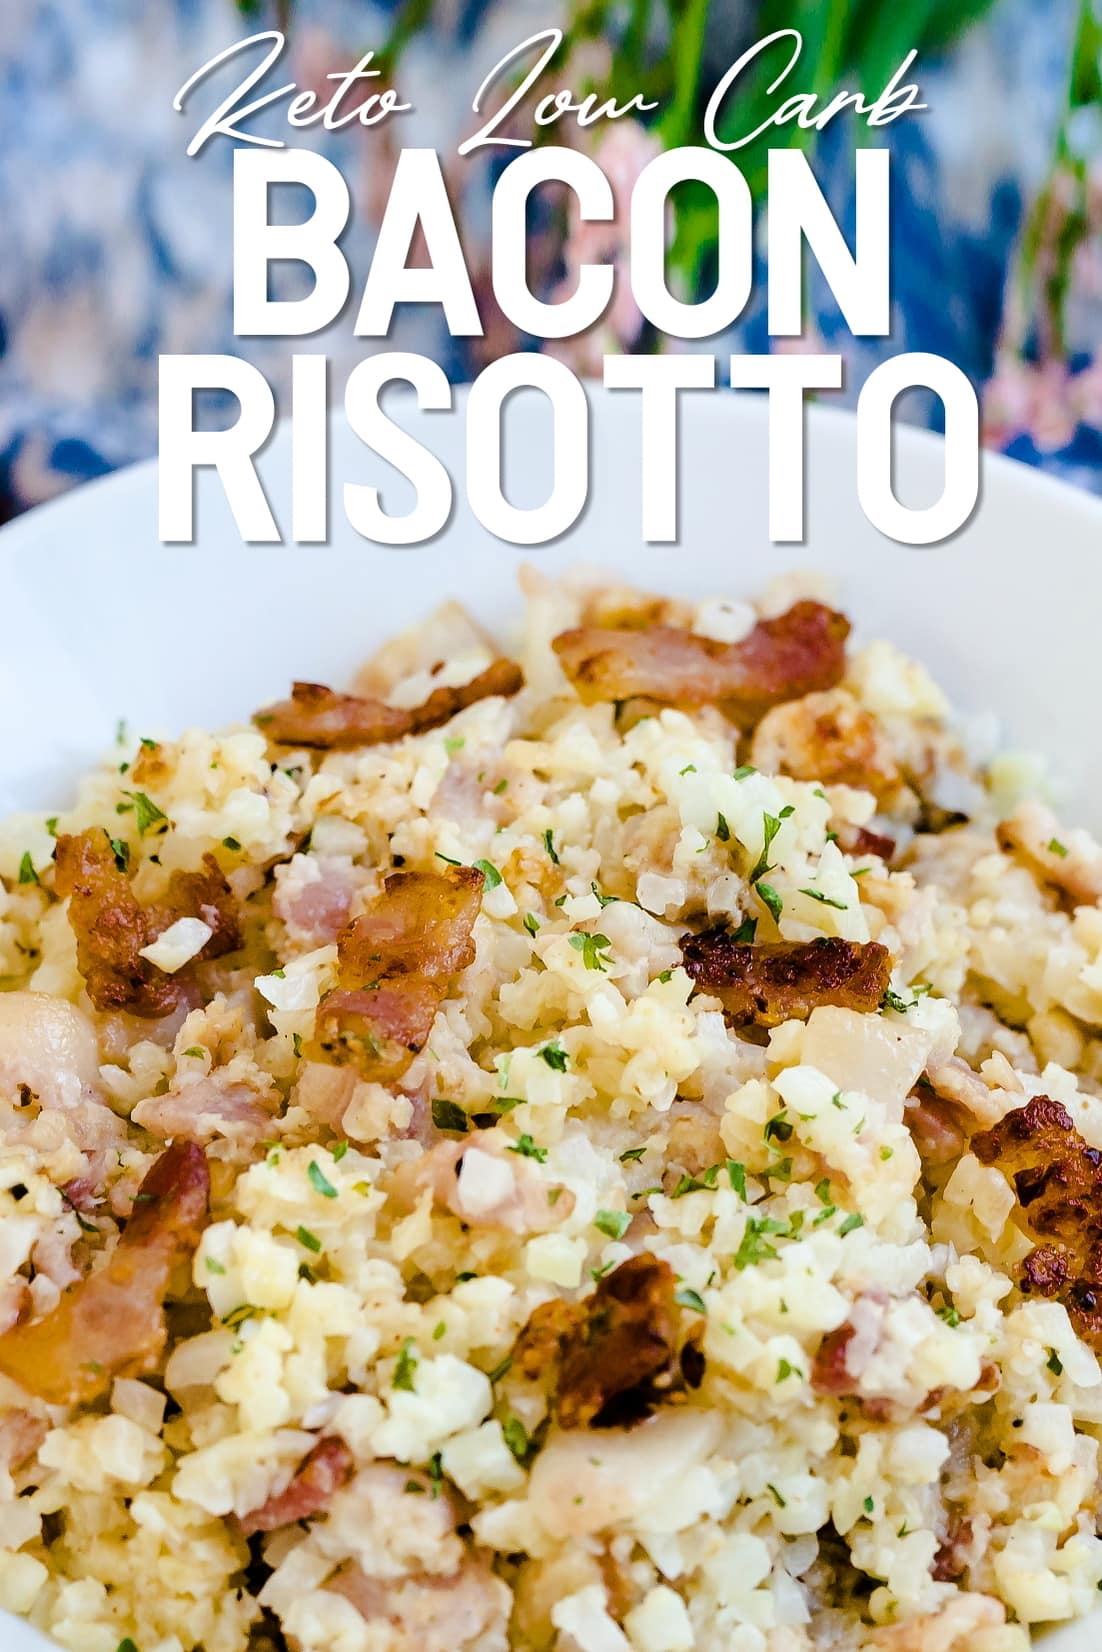 Keto Bacon Risotto served in a bowl with sprinkles of shredded parmesan